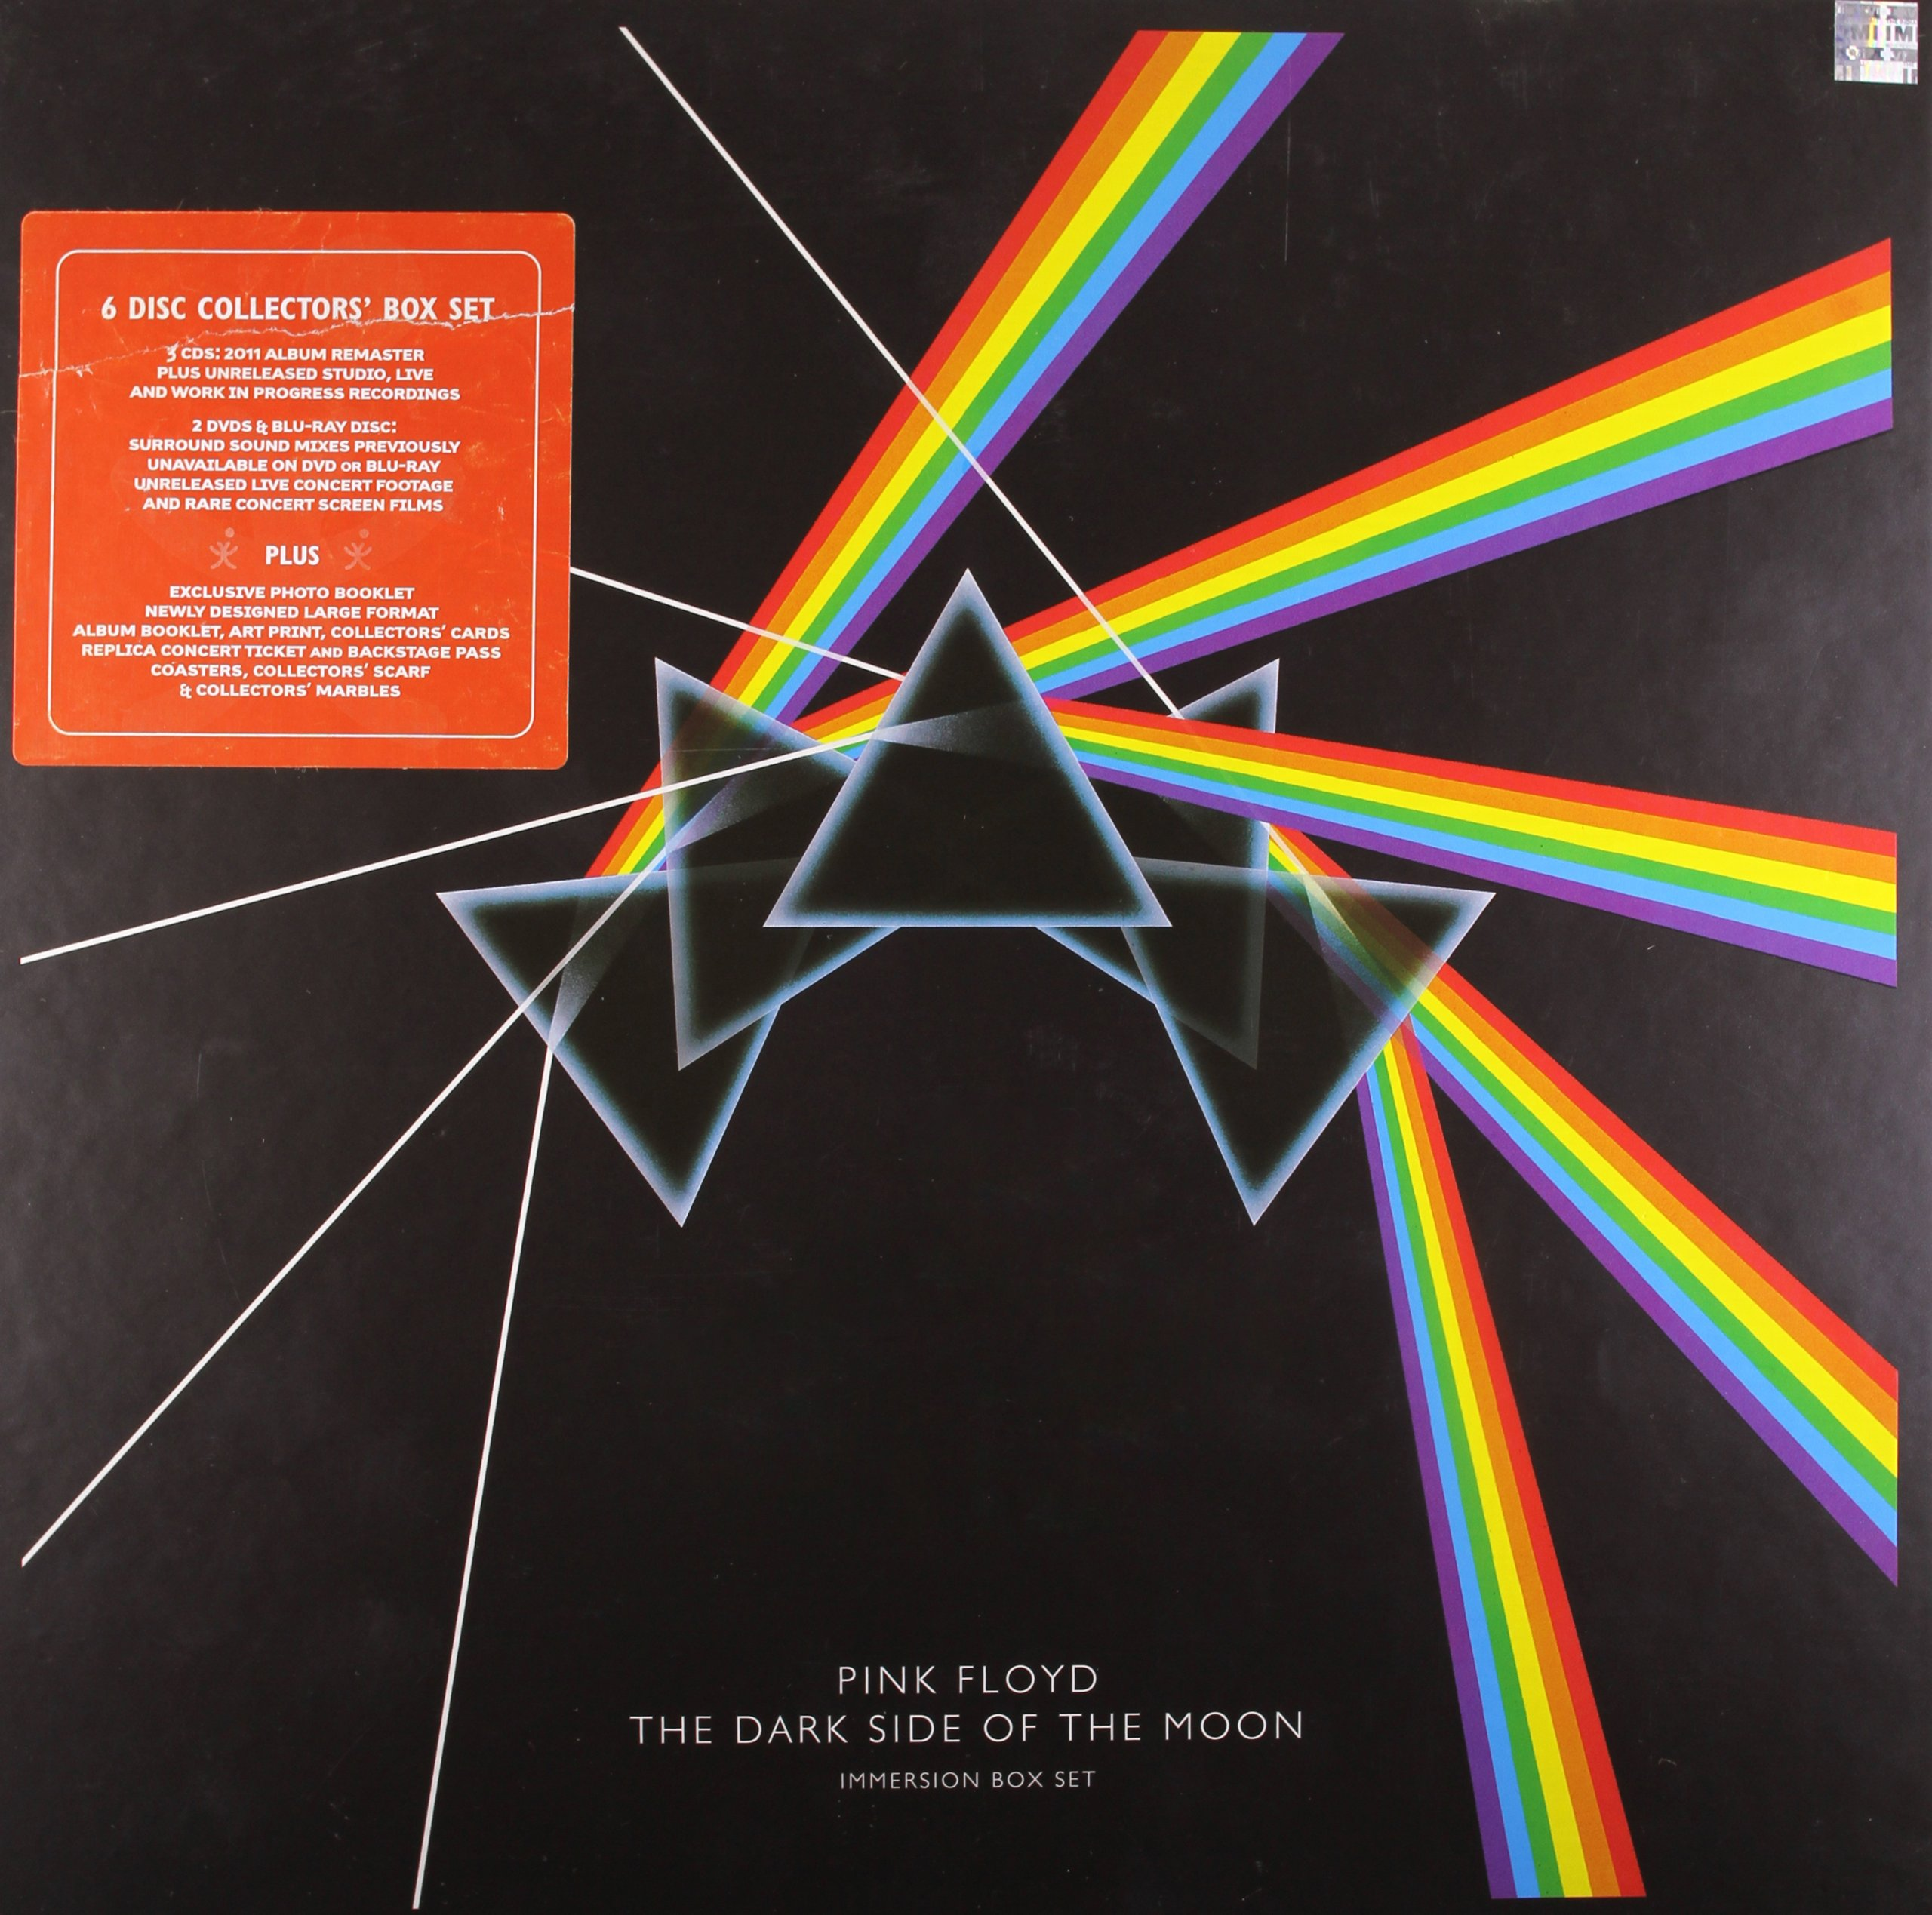 The Dark Side Of The Moon - Immersion Box Set by Capitol Records